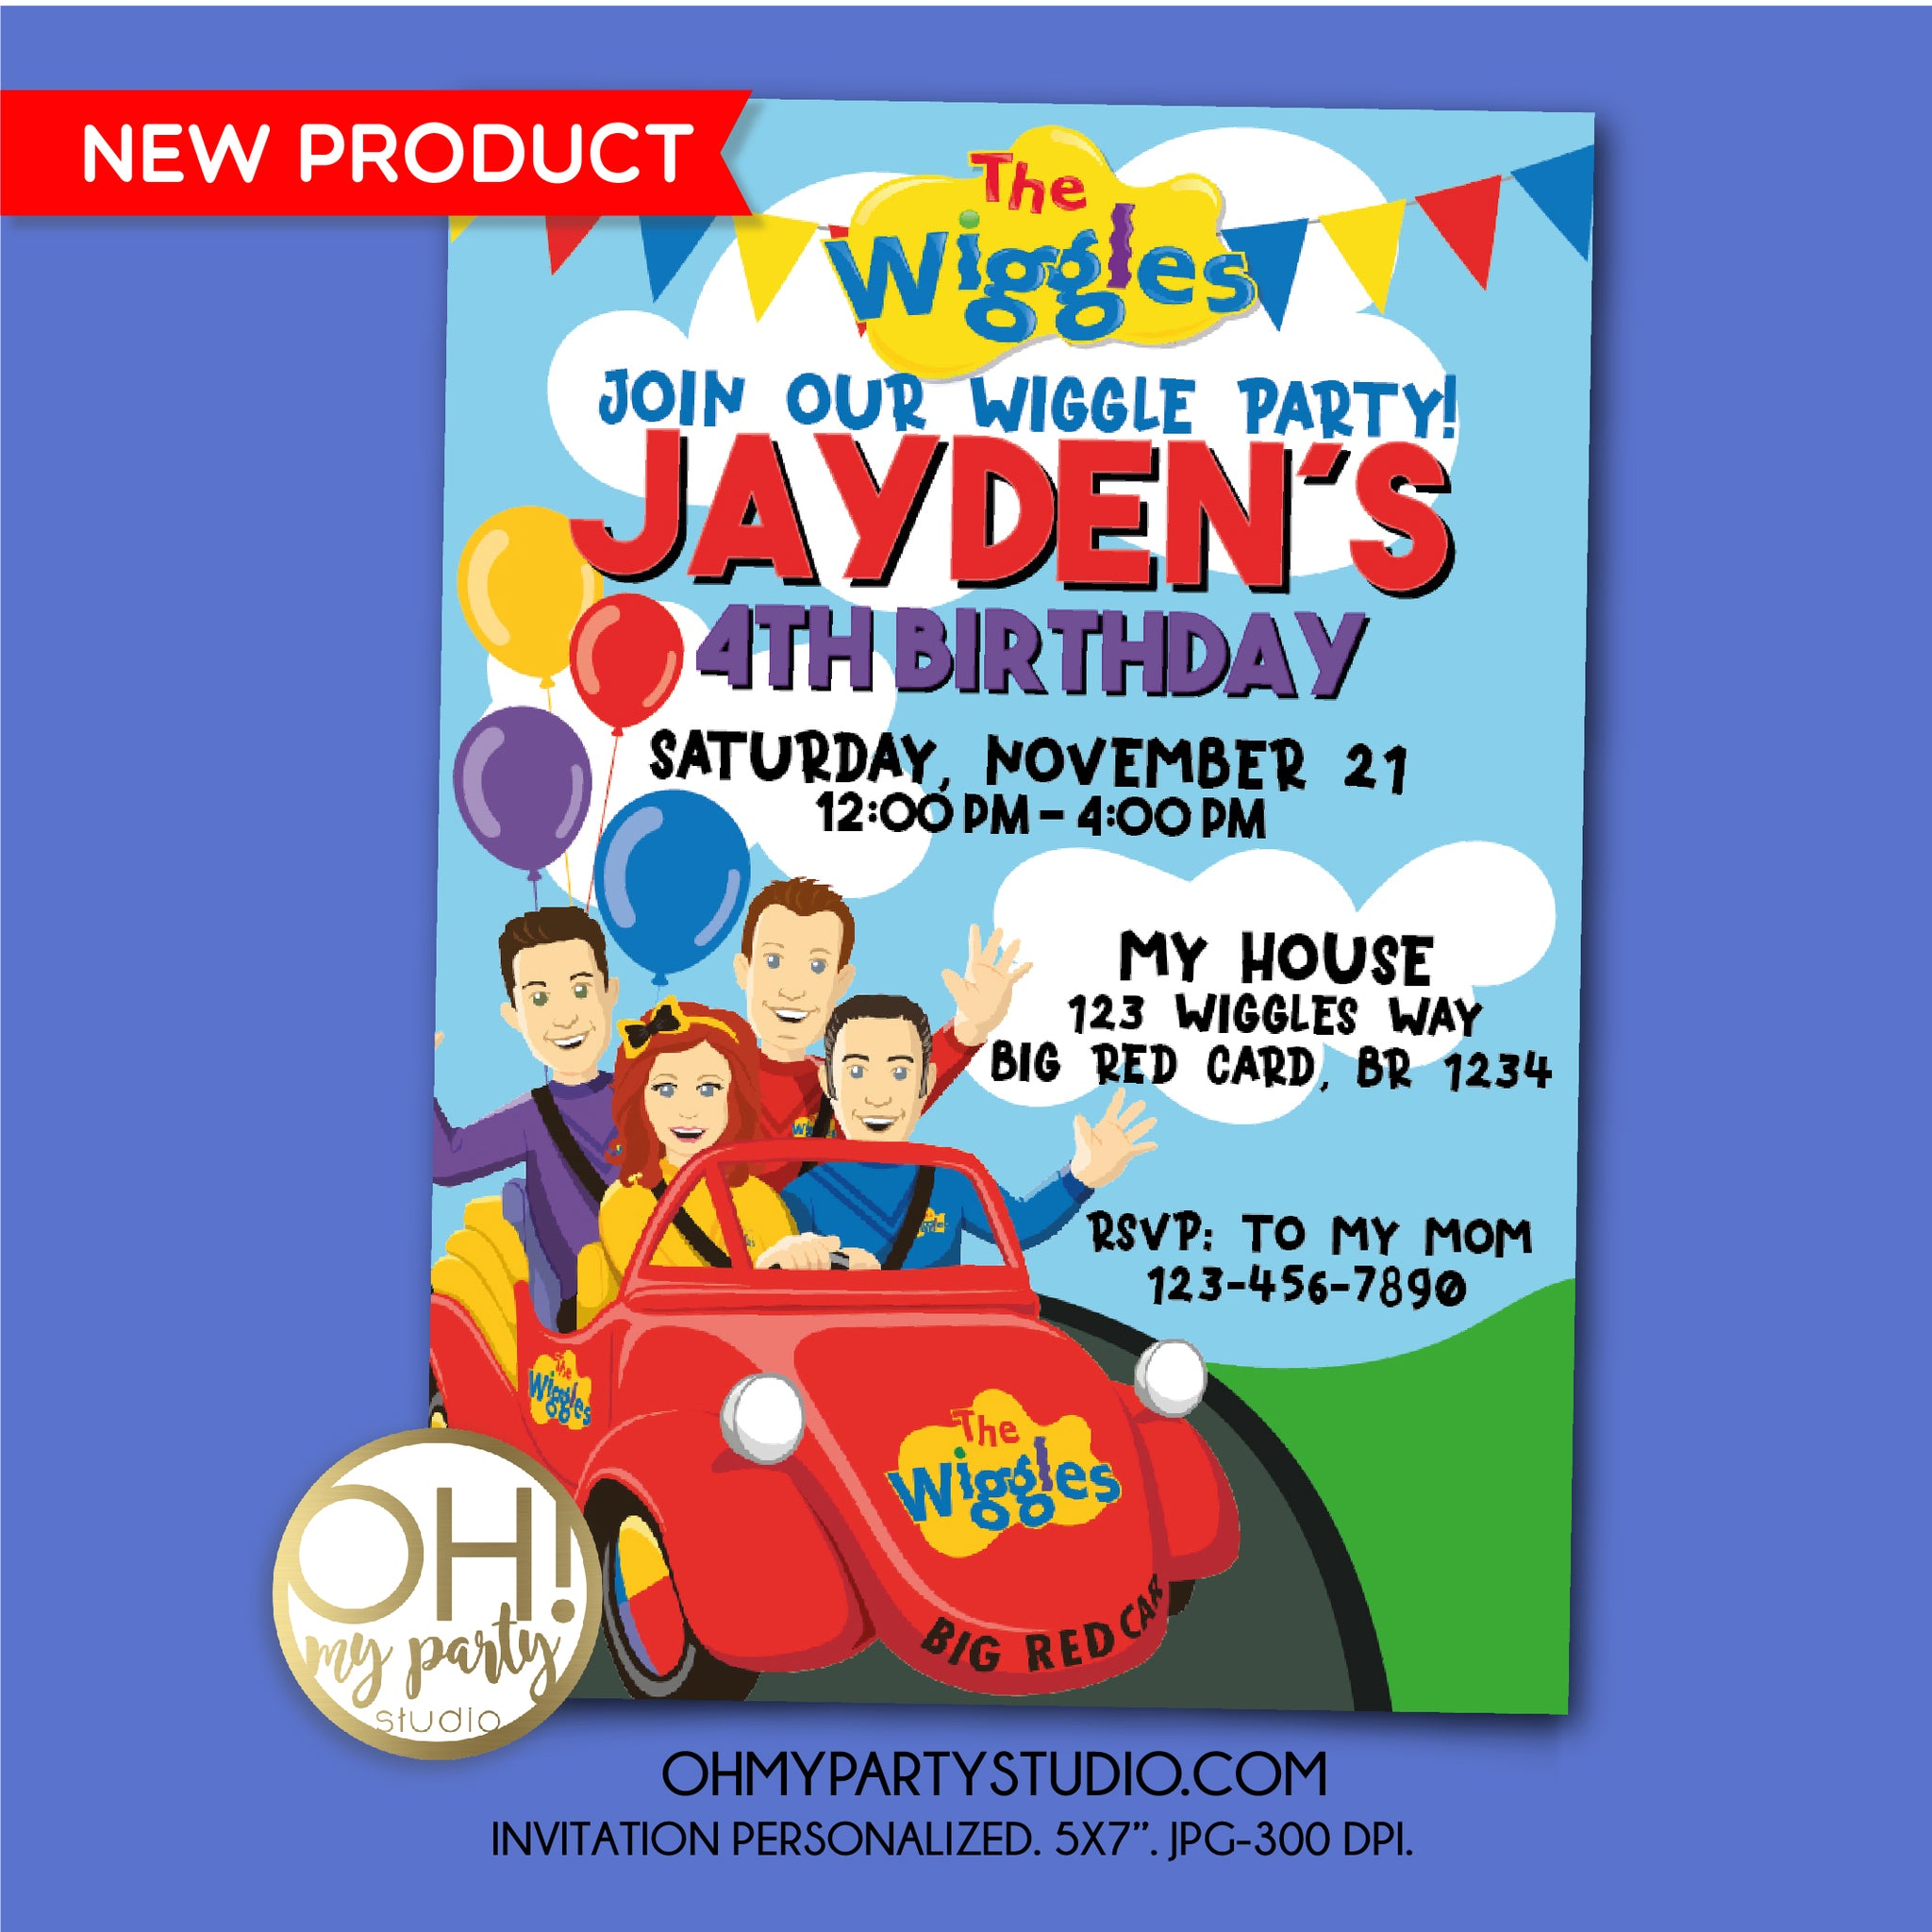 THE WIGGLES BIRTHDAY PARTY INVITATION, THE WIGGLES INVITATIONS, THE WIGGLES INVITATIONS, THE WIGGLES BIRTHDAY PARTY, THE WIGGLES INVITE, THE WIGGLES BIRTHDAY INVITATION, THE WIGGLES PARTY IDEAS, THE WIGGLES PARTY DECORATIONS, THE WIGGLES PARTY PRINTABLES, THE WIGGLES INVITATION, THE WIGGLES DIGITAL INVITATION